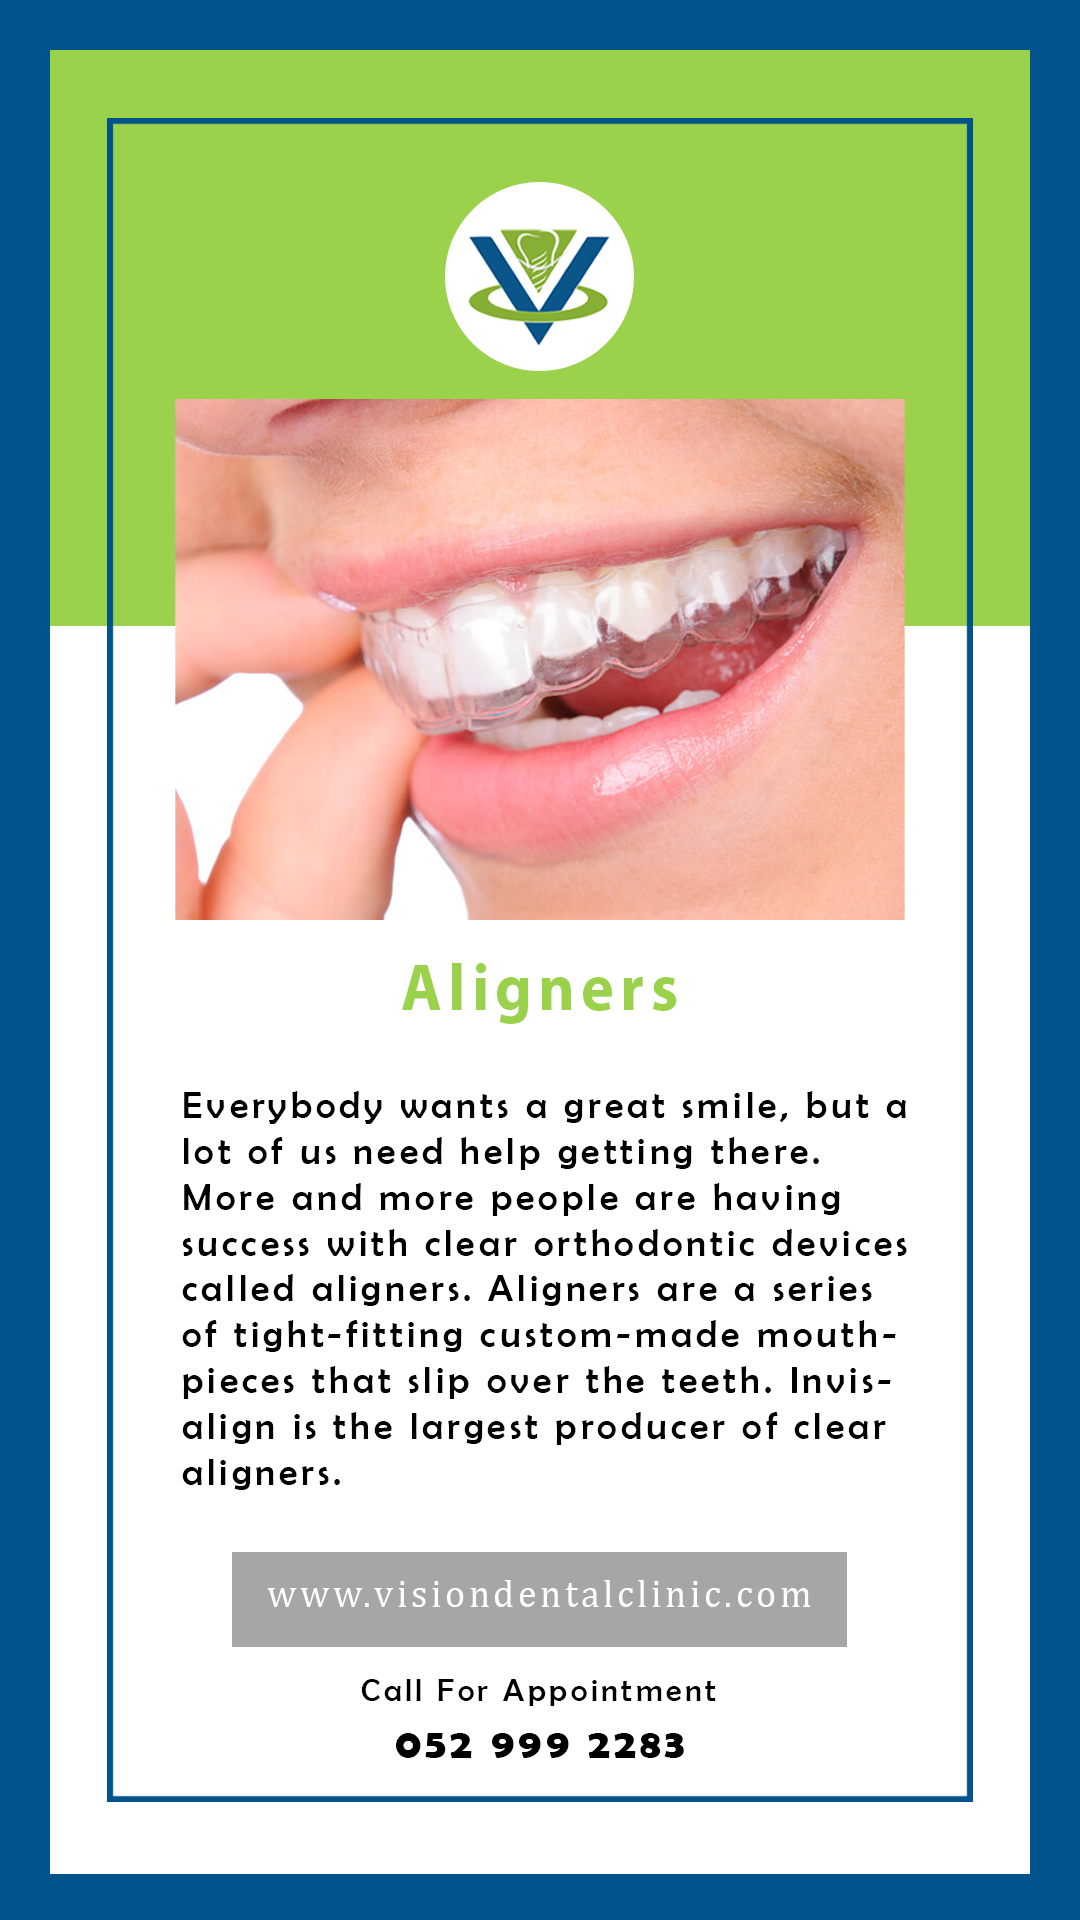 Invisalign Dentist in Abu Dhabi (With images) Dental